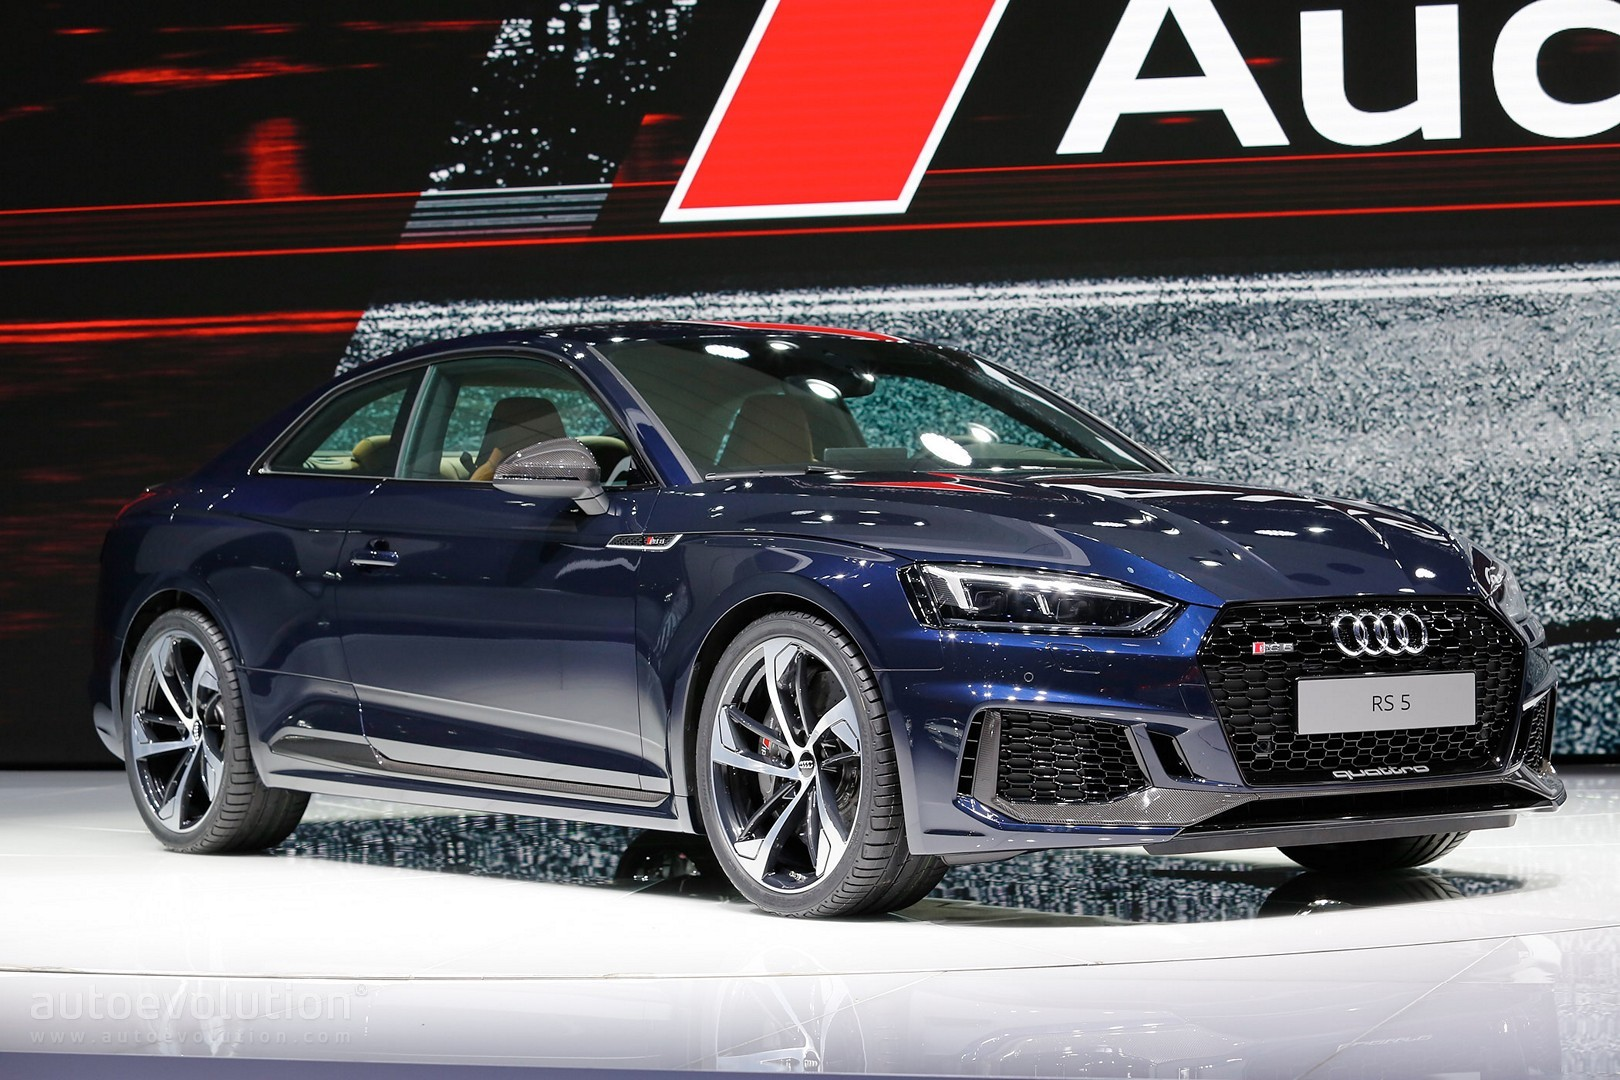 2018 Audi RS5 Looks Sexy in Geneva, But Is 450 HP Enough ...